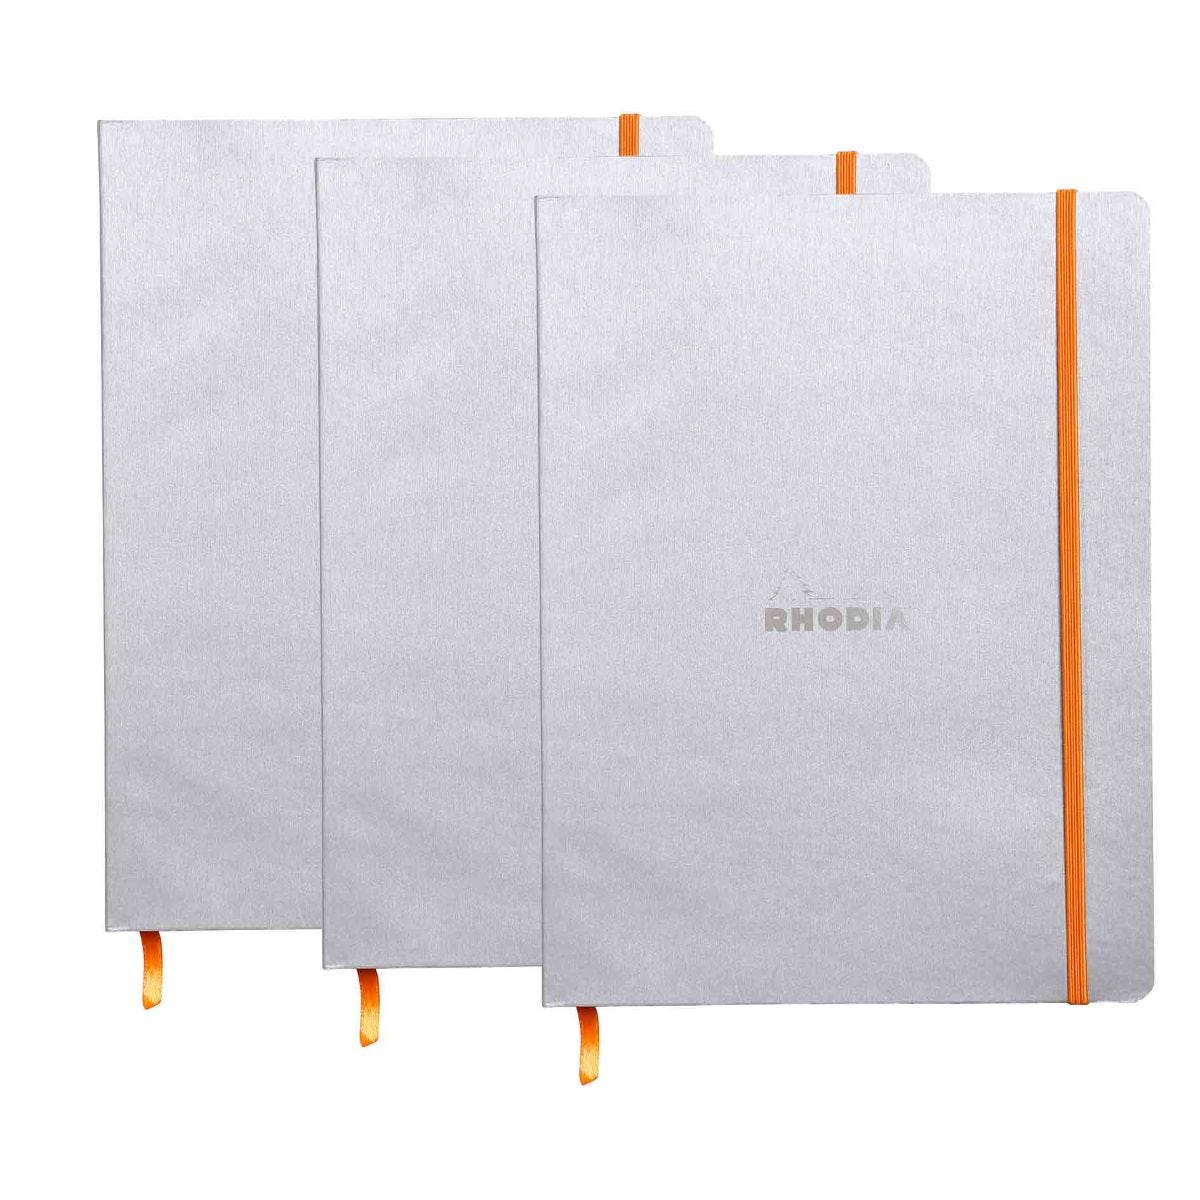 Rhodiarama B5 Ruled Notebook Pack of 3, Silver